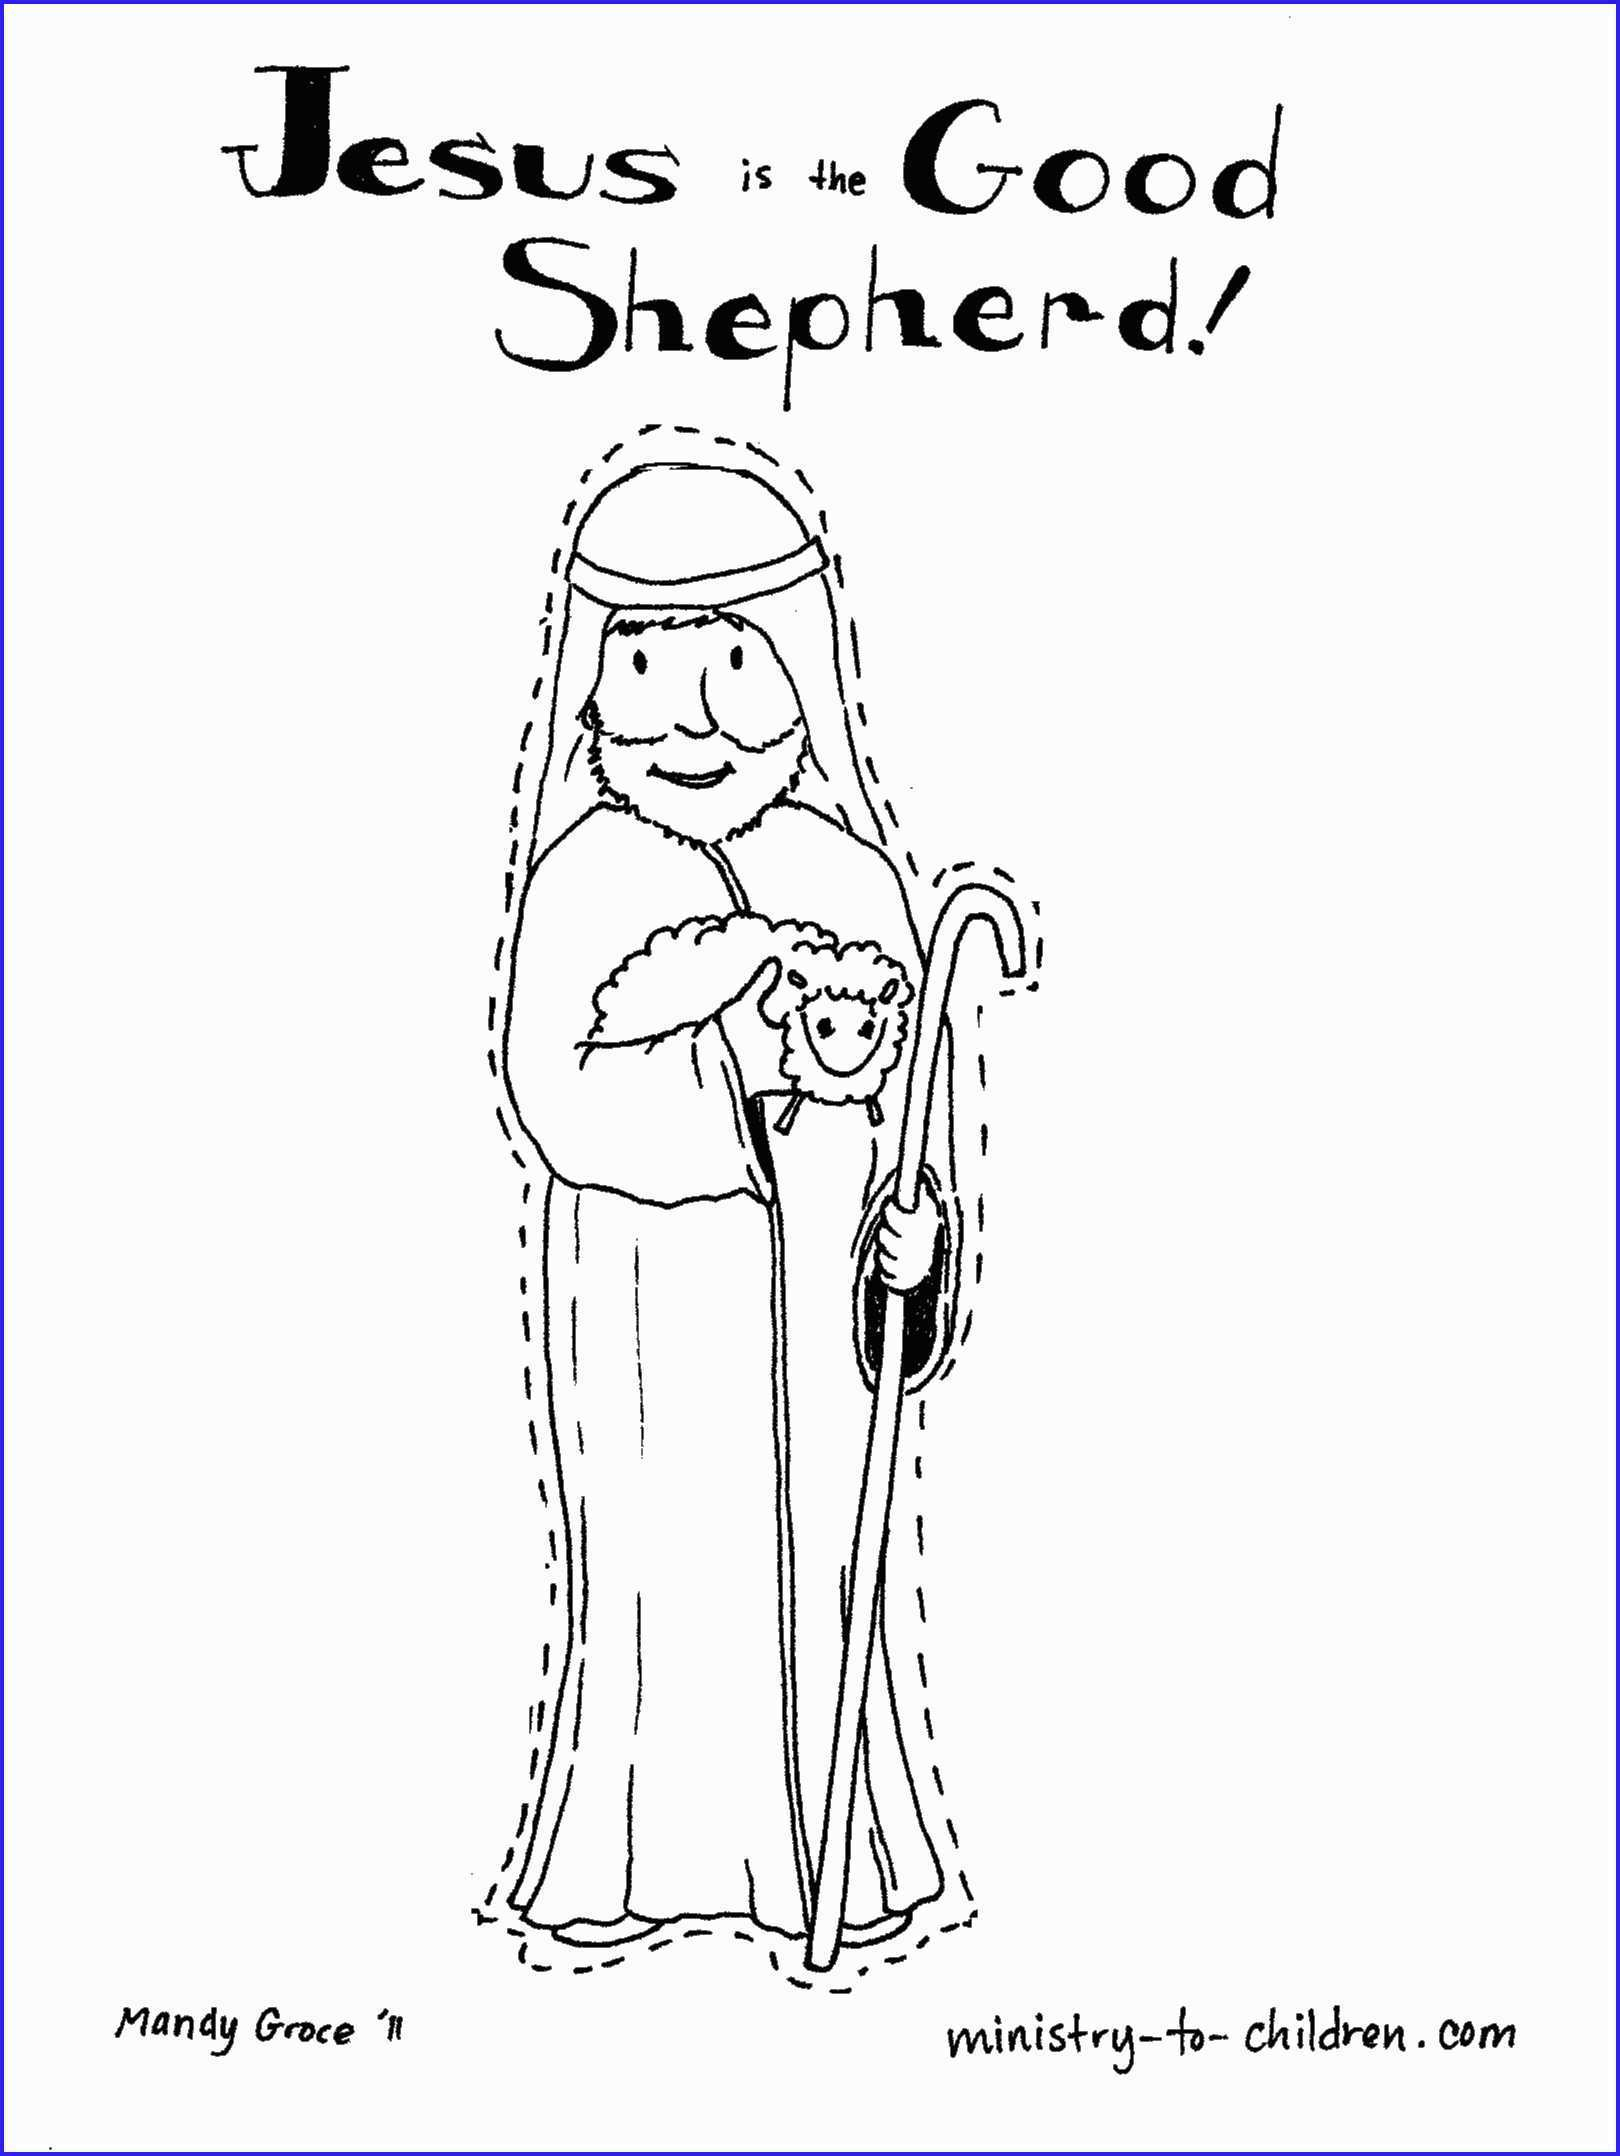 The Good Shepherd Coloring Page Jesus The Good Shepherd Coloring Pages New 16 Best Of Bible Verse